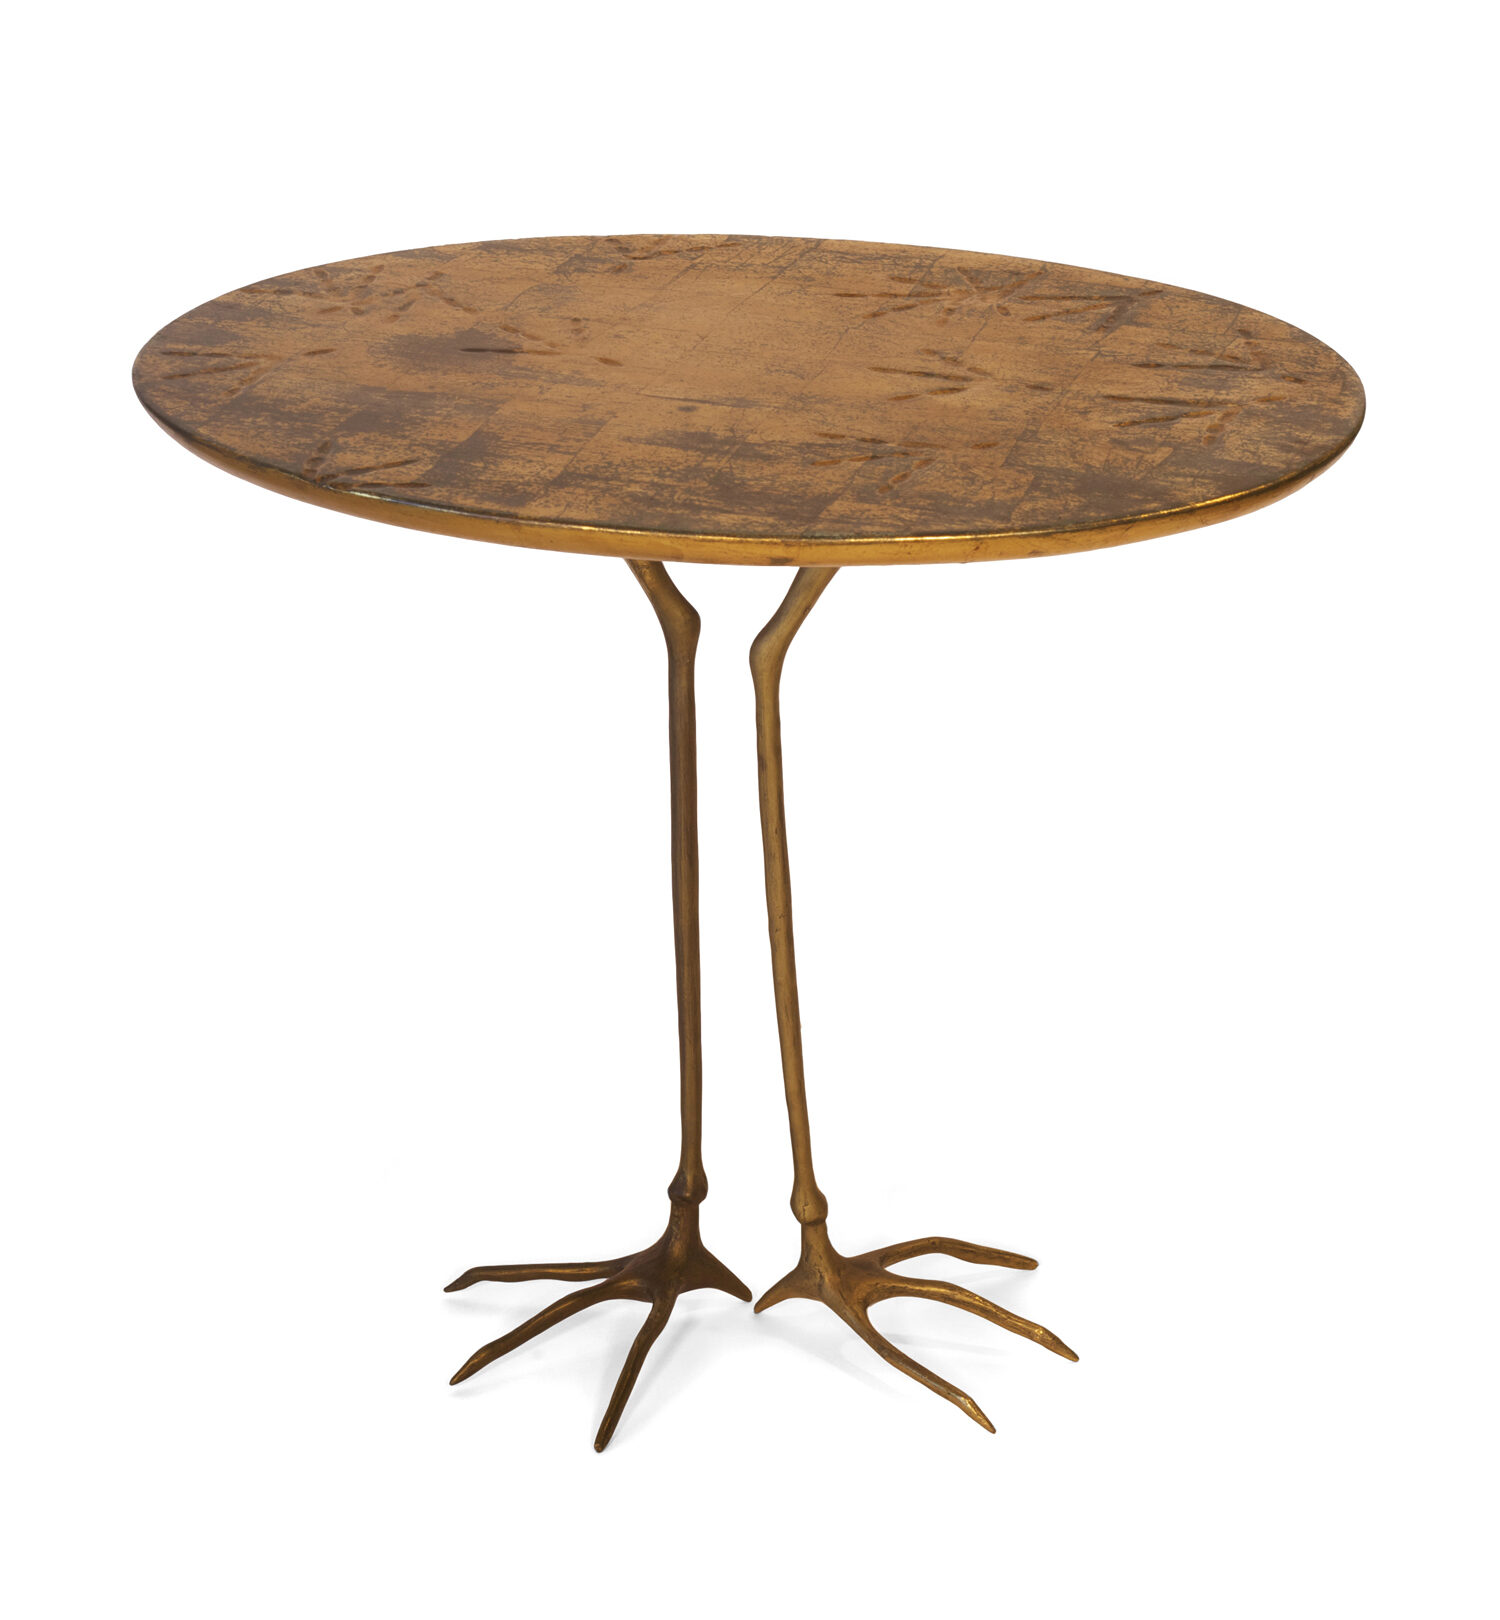 Surrealist sculpture and functional occasional table is shown from above at a high angle; the work features realistic cast bronze crane legs holding a round wooden, gold-plated tabletop.